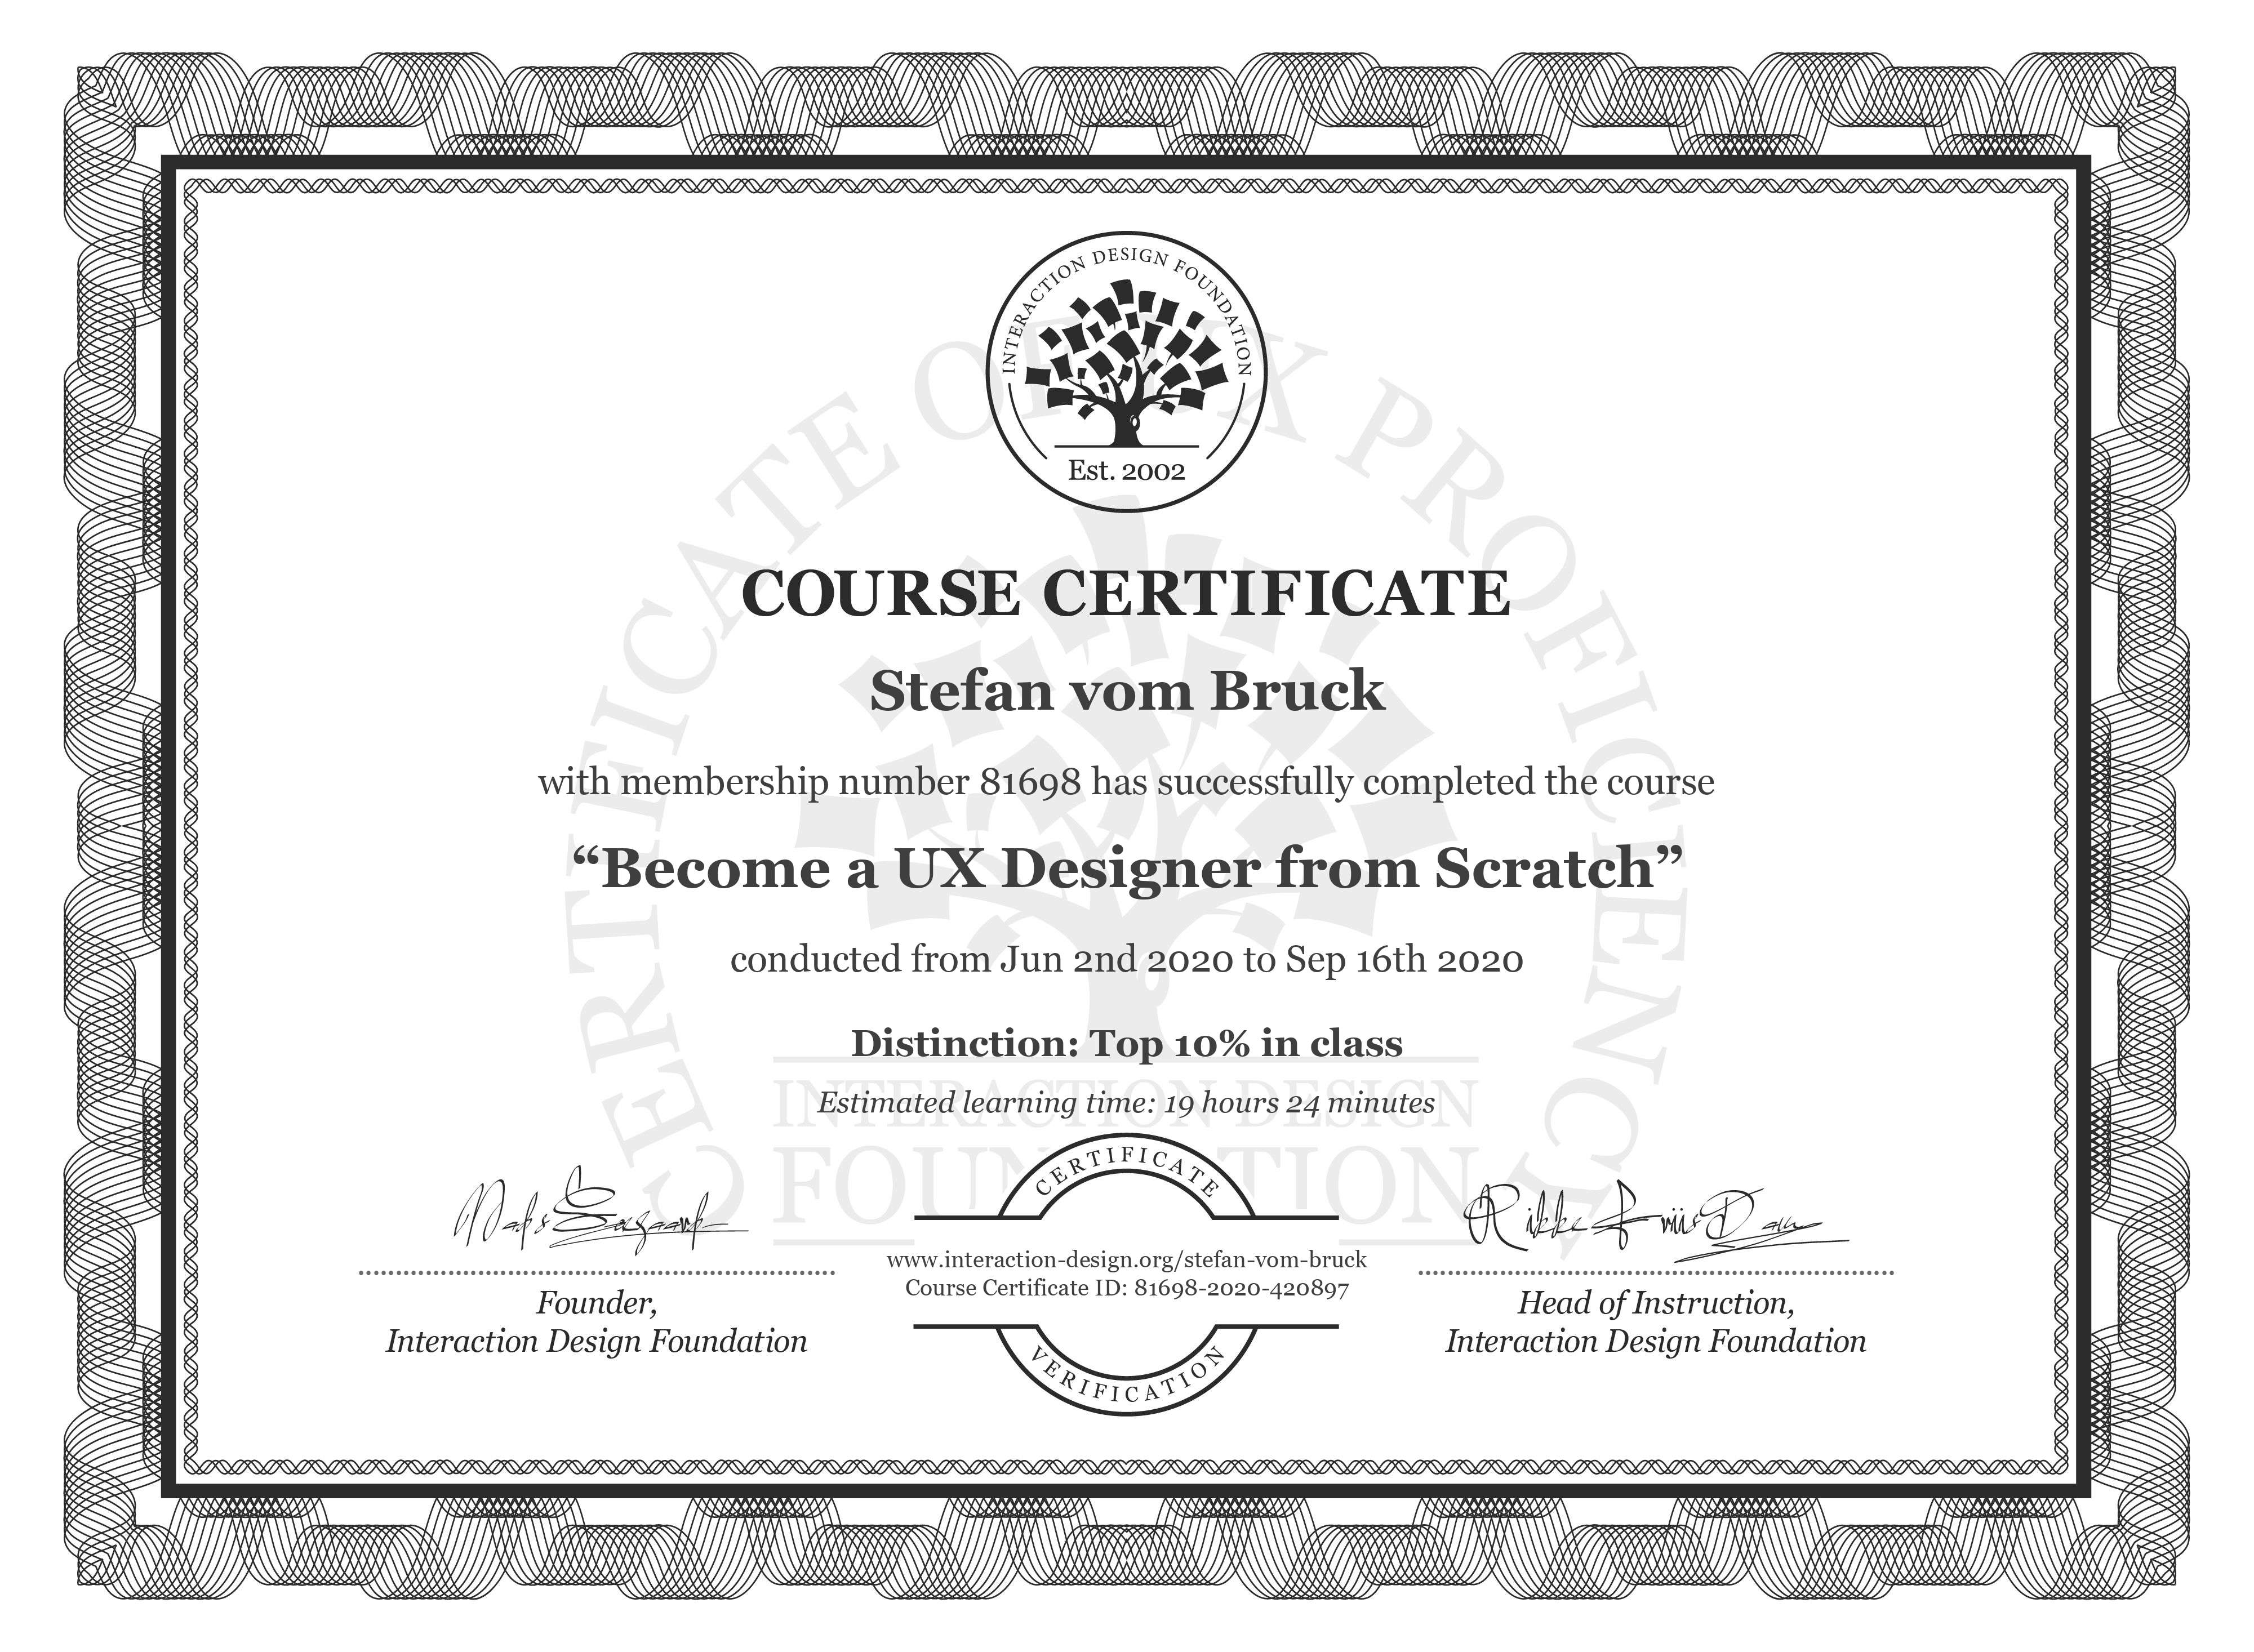 Stefan vom Bruck's Course Certificate: User Experience: The Beginner's Guide